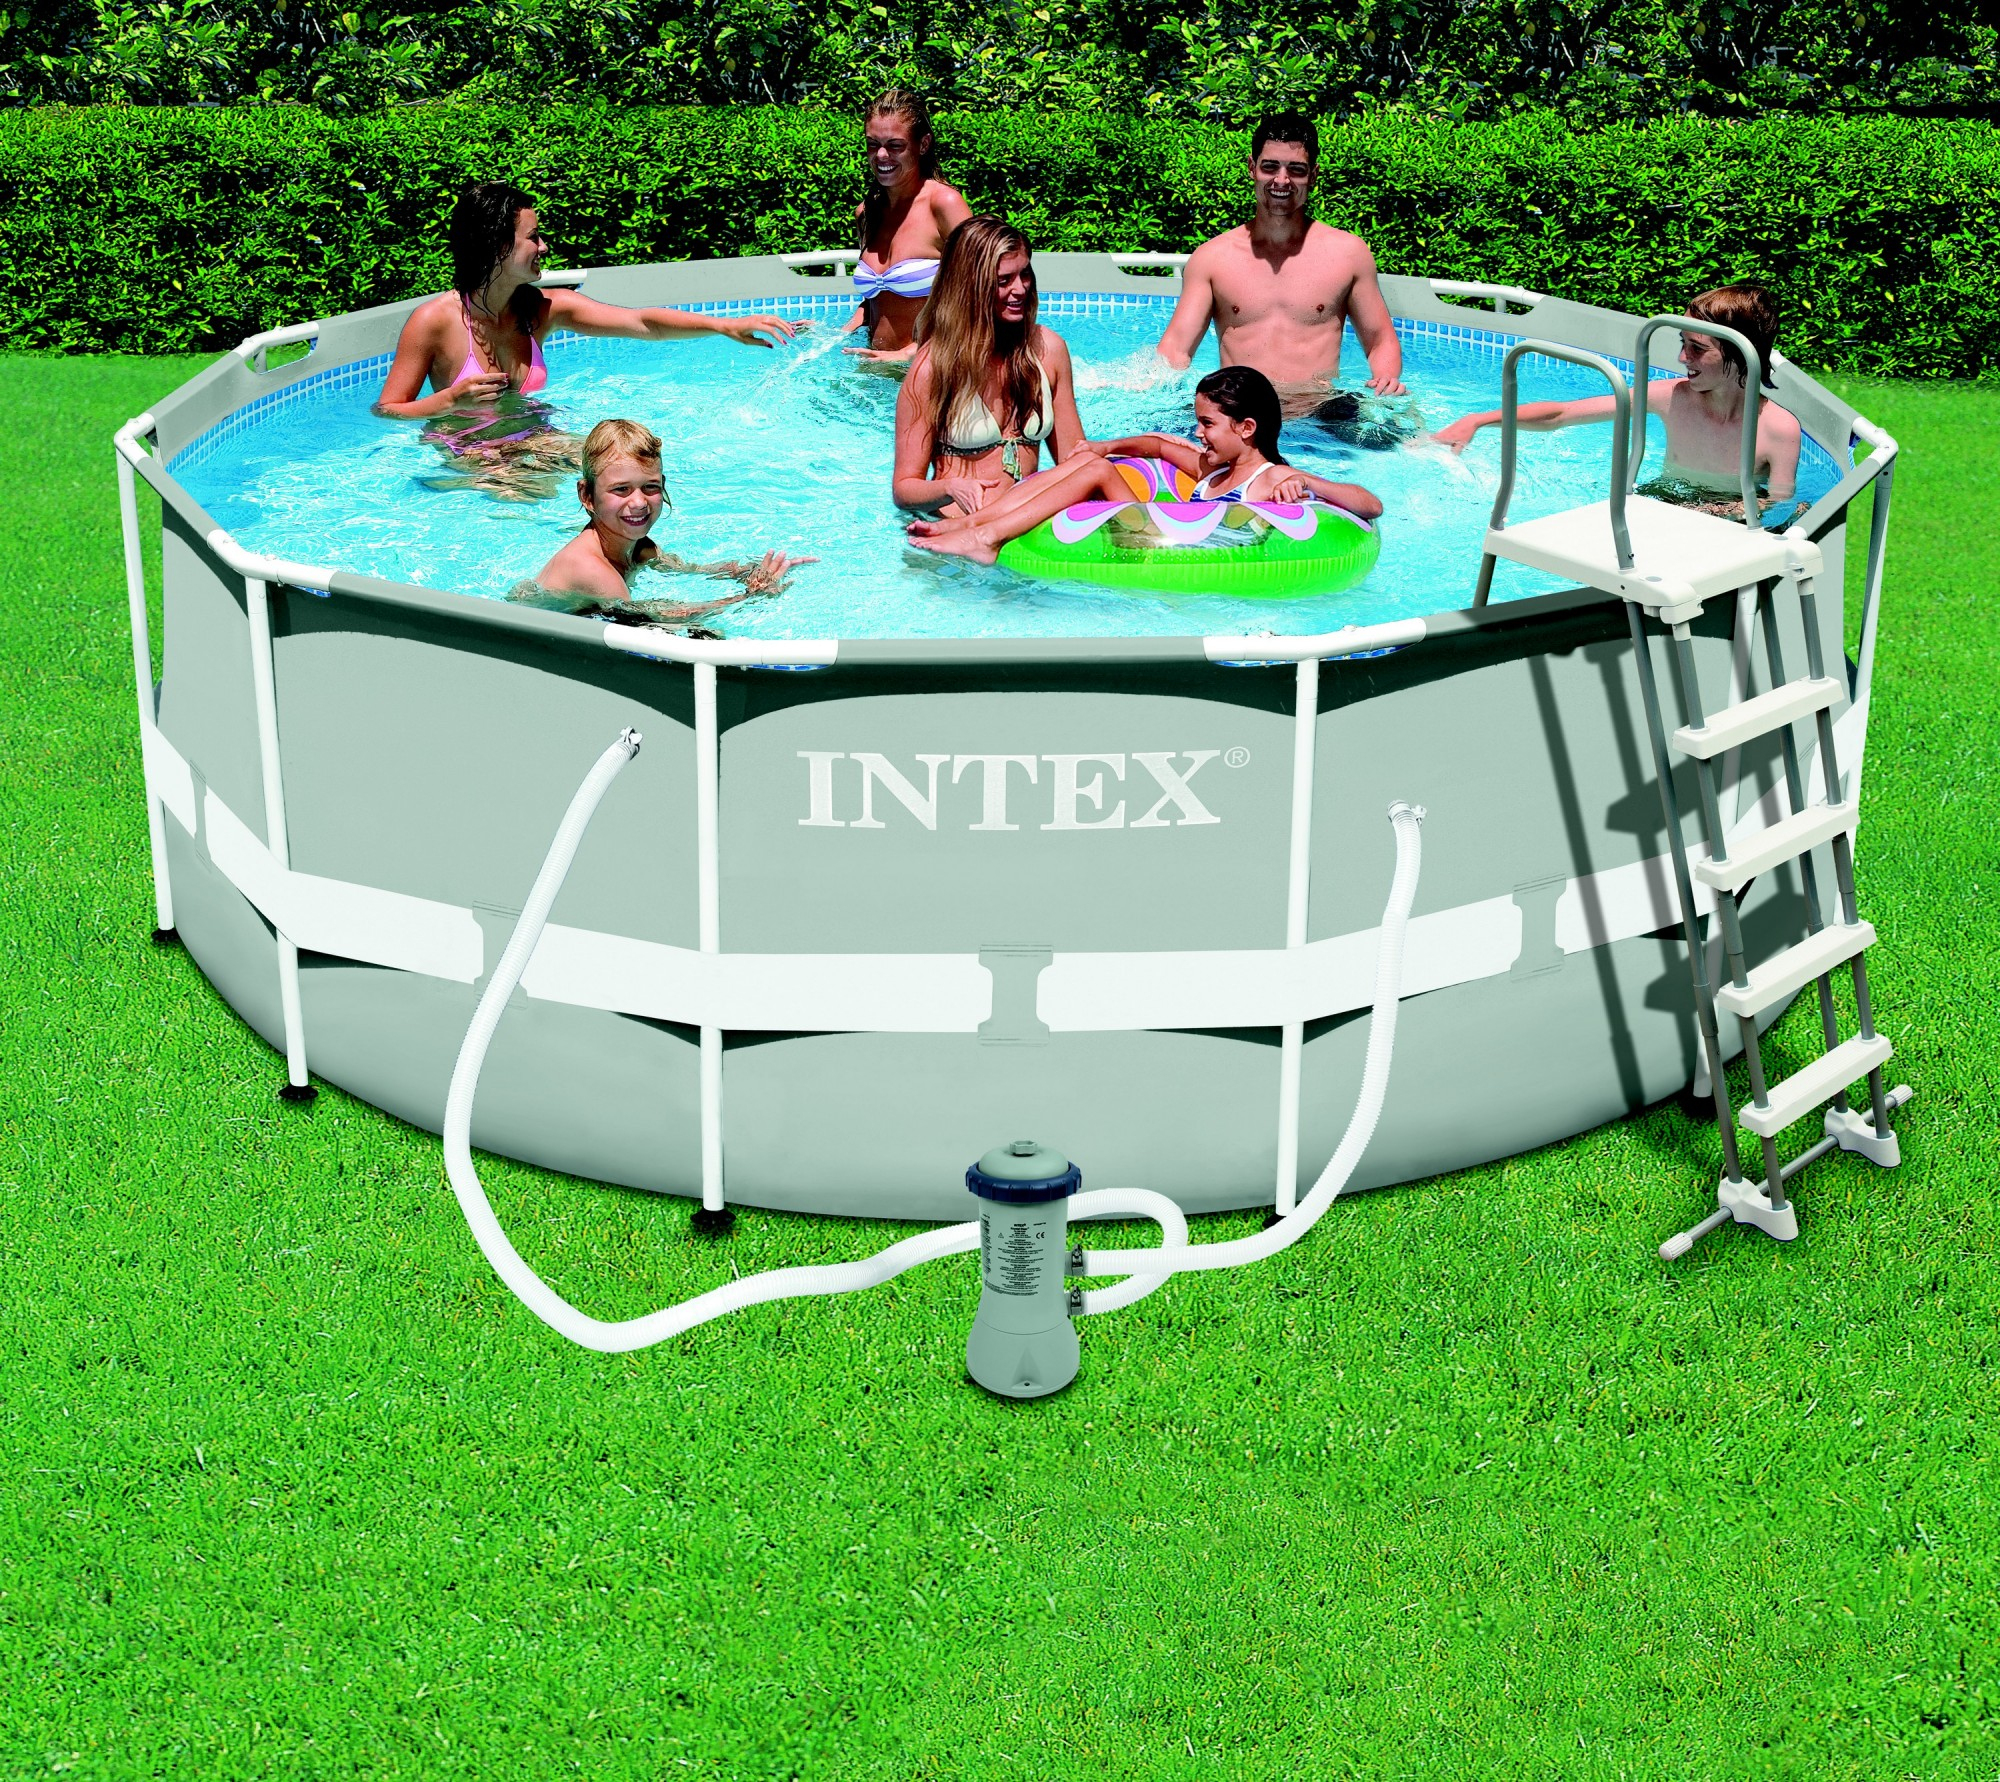 Piscine Intex Metal Frame - Groupe Abris Et Piscines destiné Prix Piscine Intex